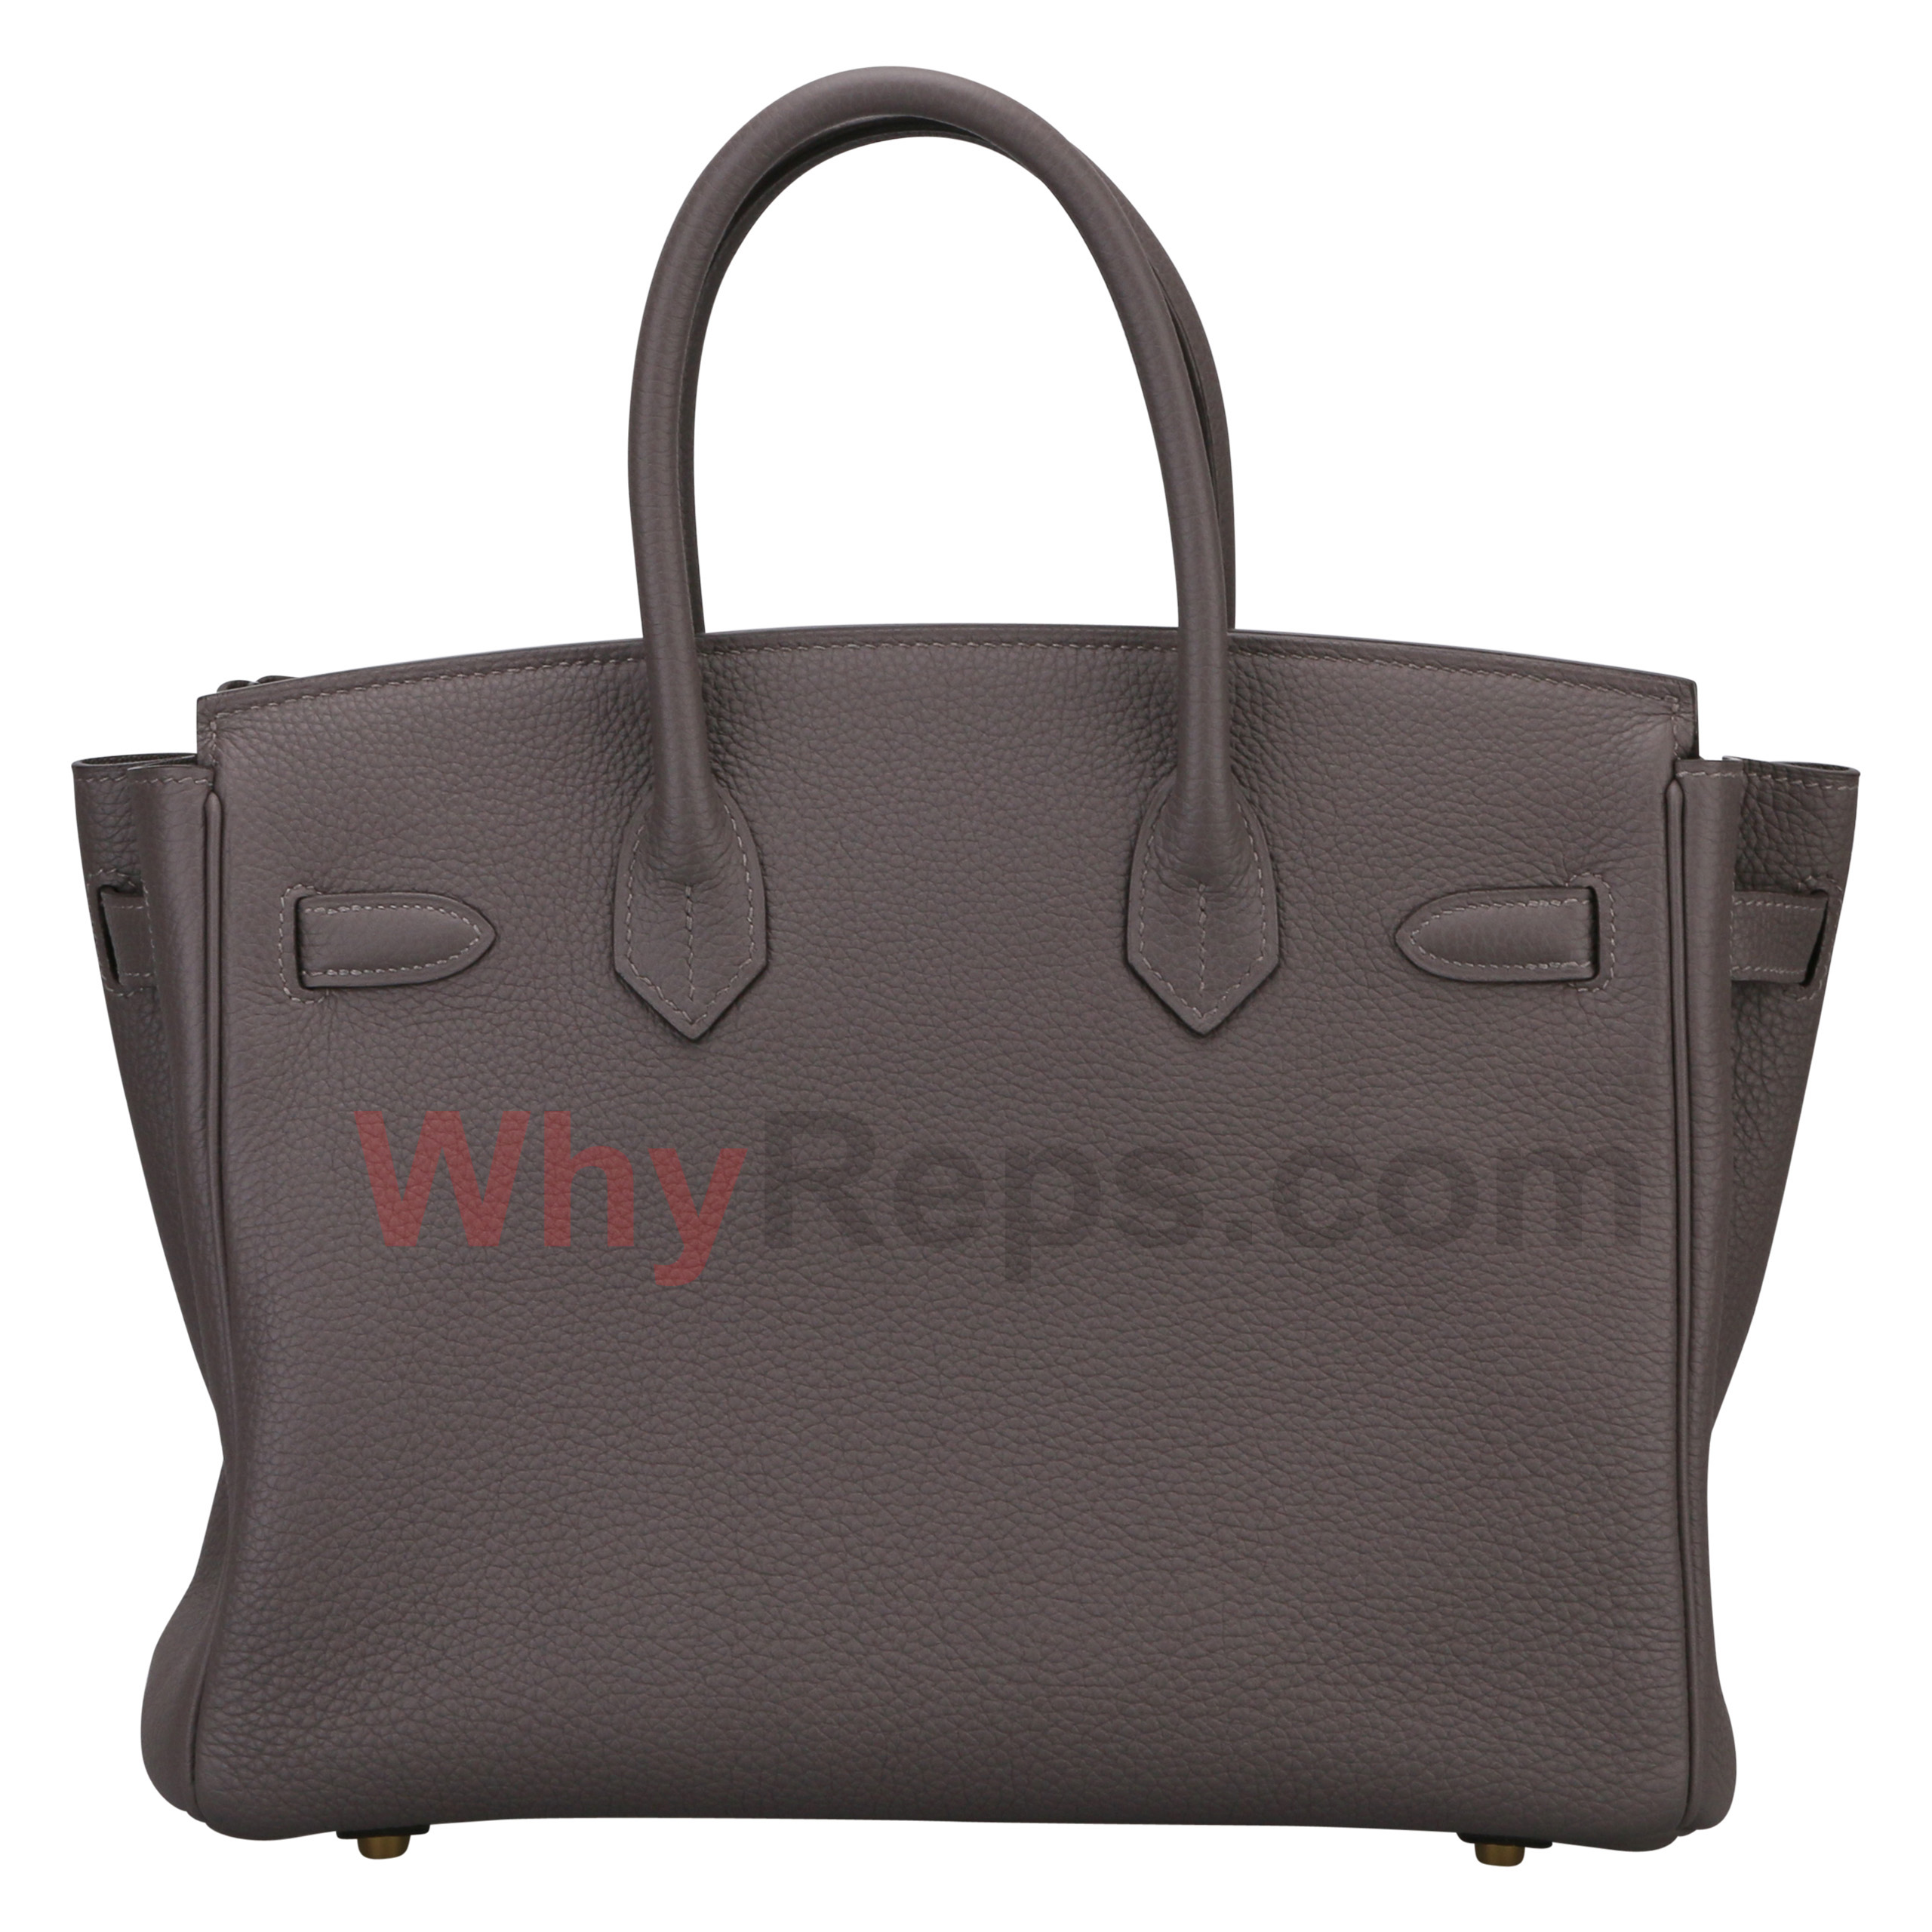 same tannery Togo leather Hermes Birkin - Who Sells the Best Hermes Replica? (An In-Depth Review on Fake Birkin)